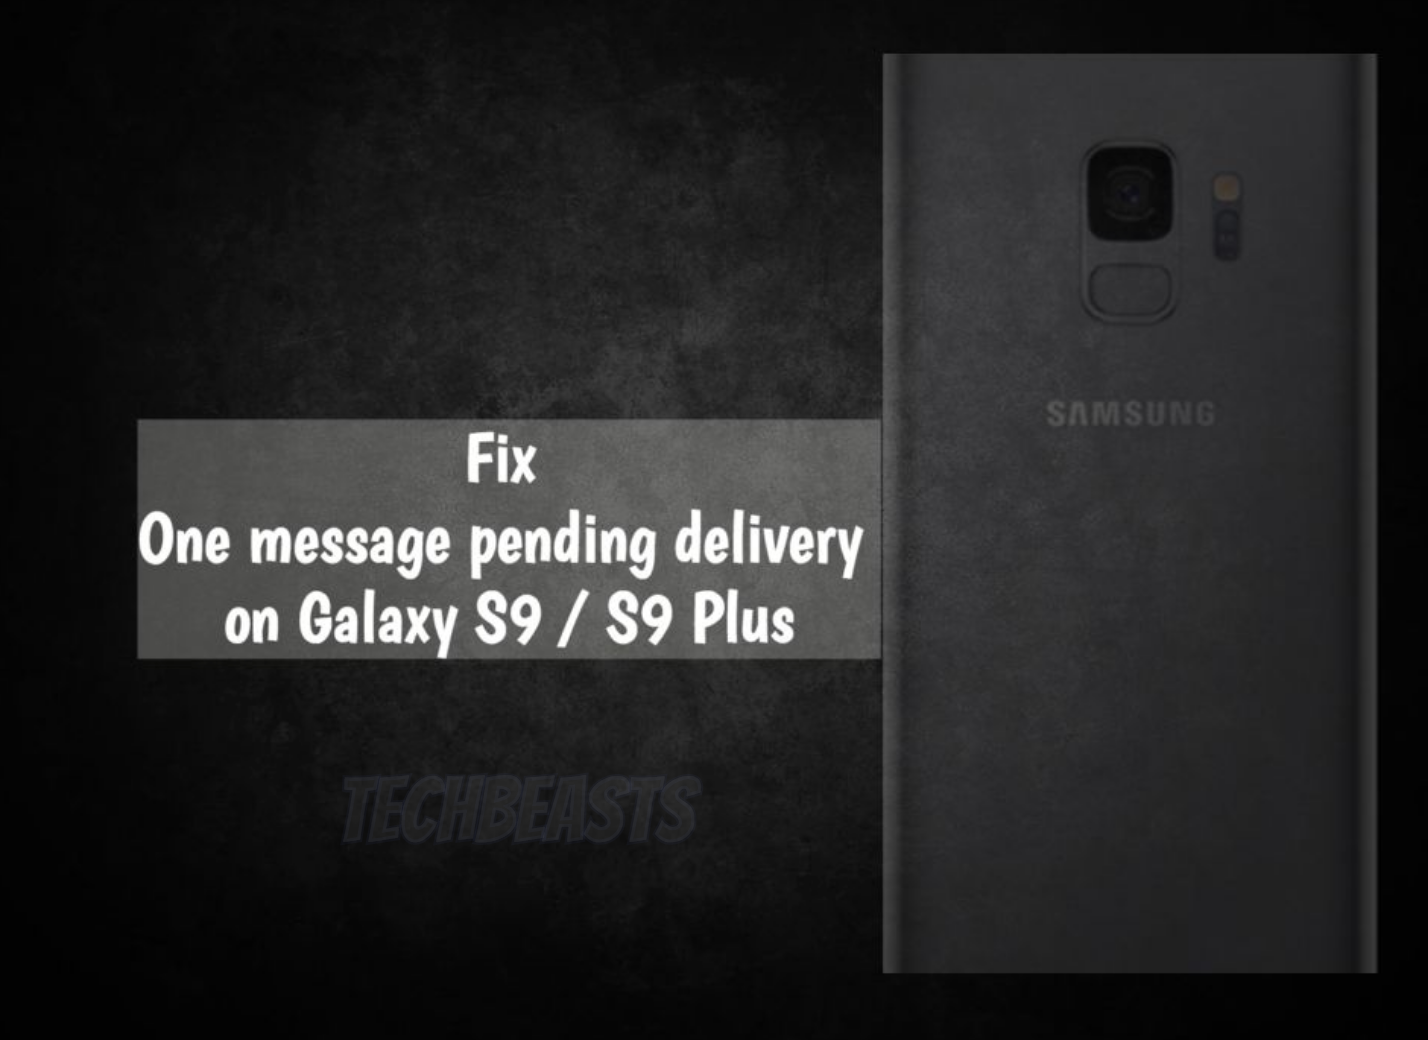 One message pending delivery on Galaxy S9